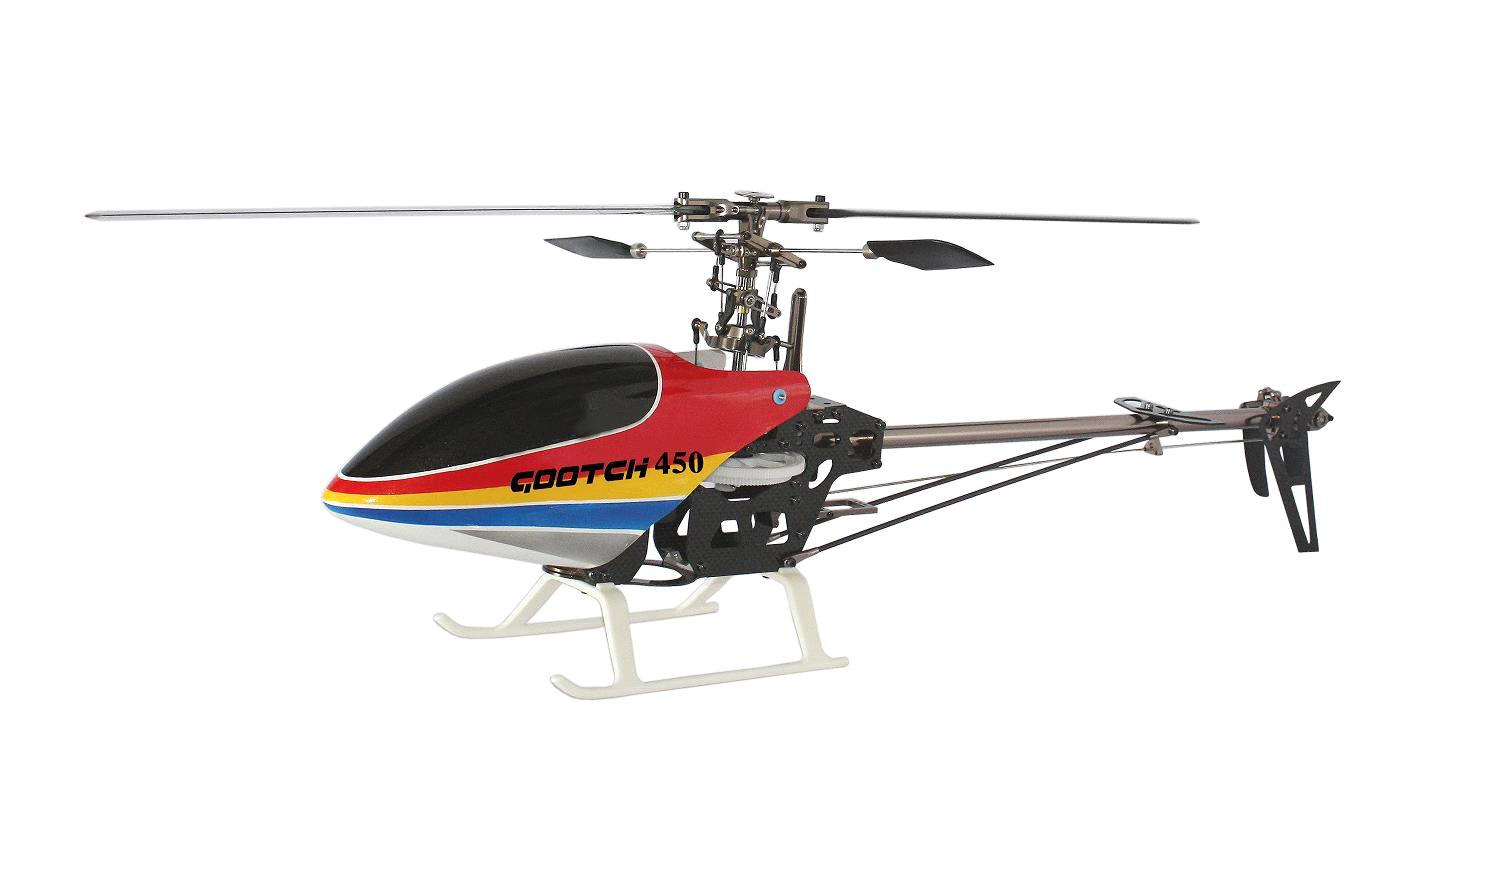 Large RC helicopter KIT Gootch 450V3TC 3D purchasing, souring ... on china rabbit toy, rc trucks toy, rc motorcycles toy,